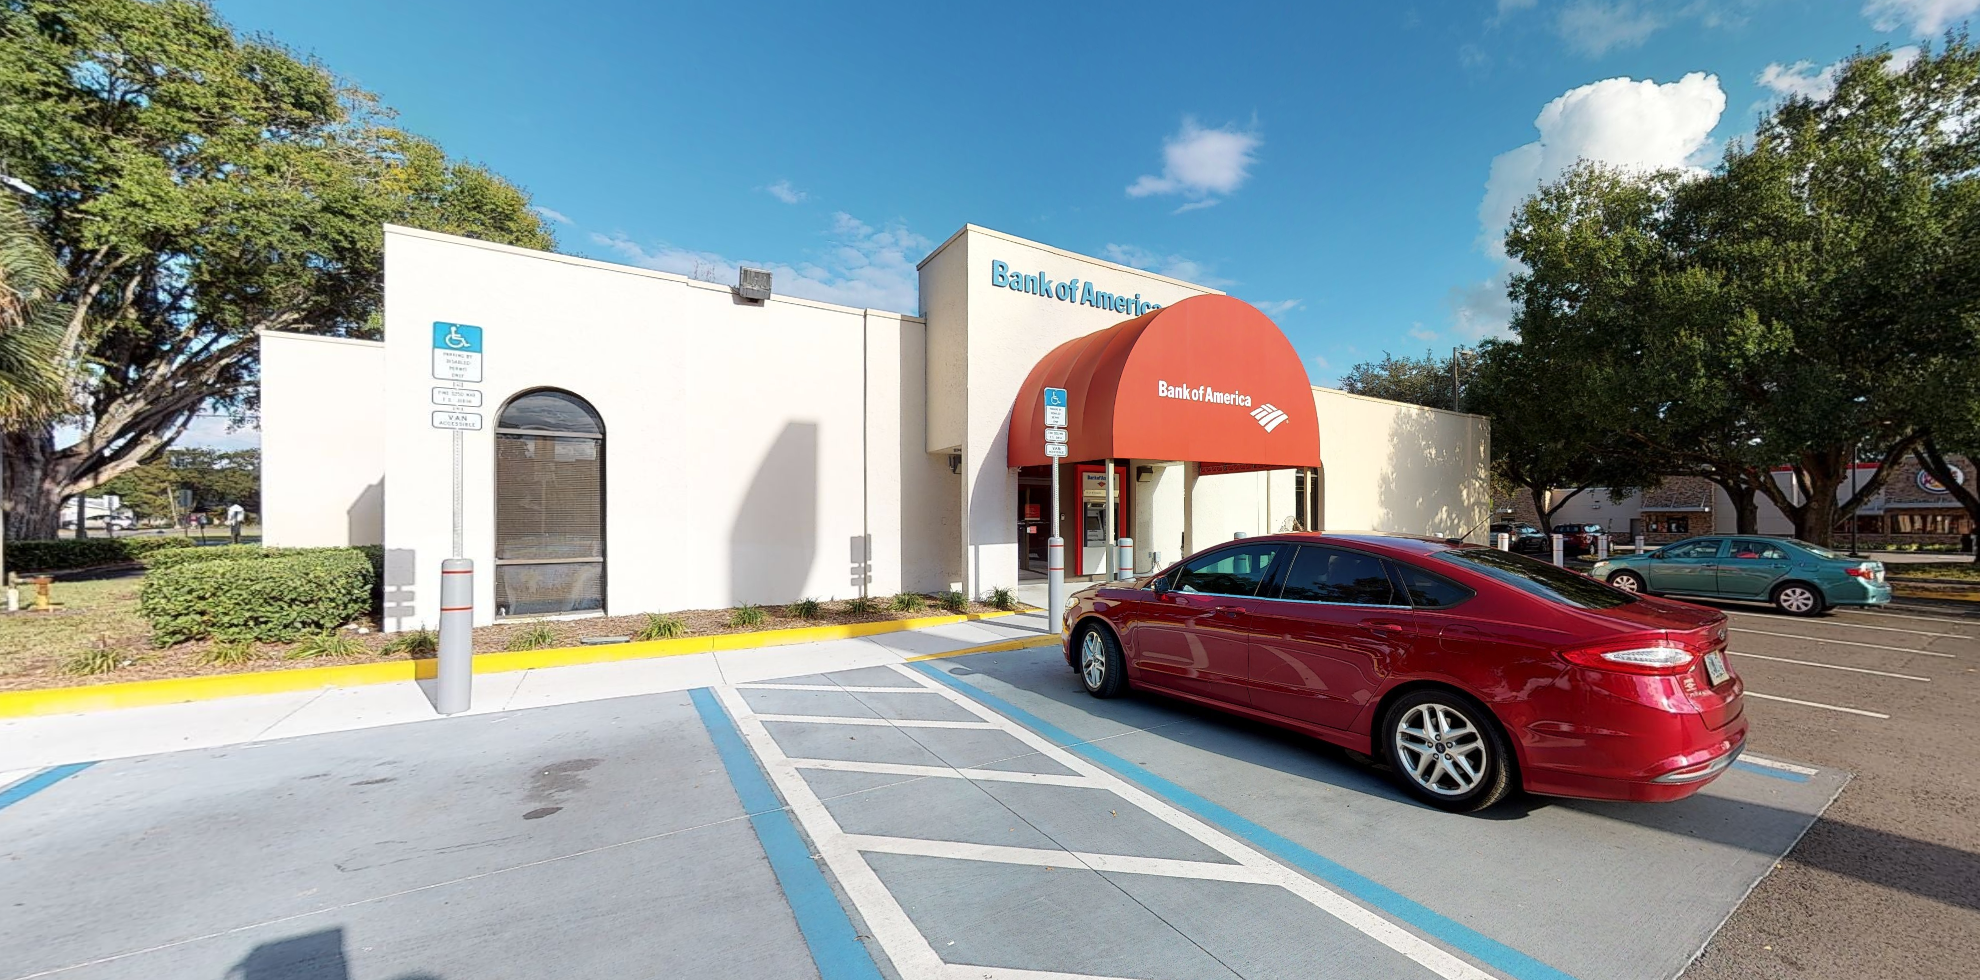 Bank of America financial center with drive-thru ATM and teller | 5632 Gall Blvd, Zephyrhills, FL 33542